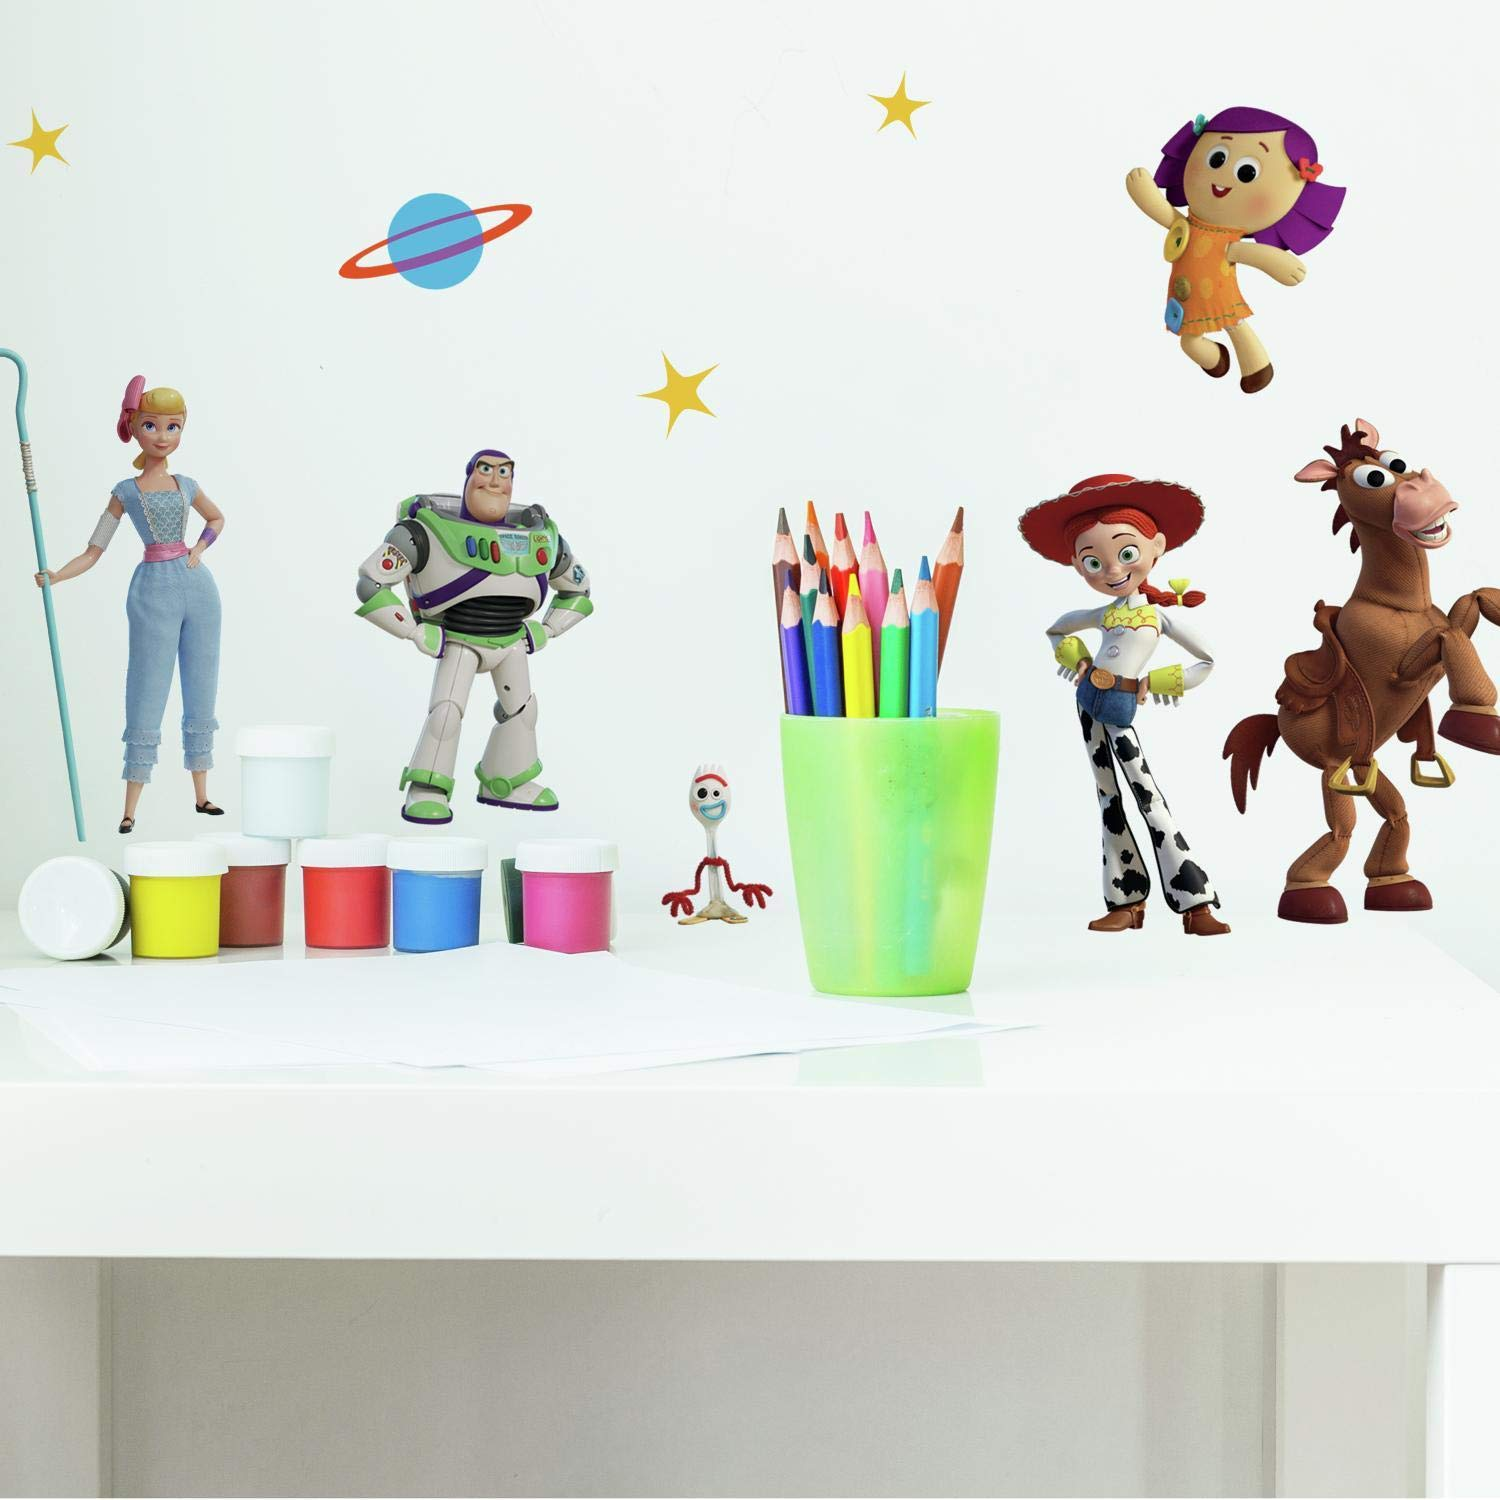 Vinilo Decorativo Pared [7rp3qgc8] Toy Story 4